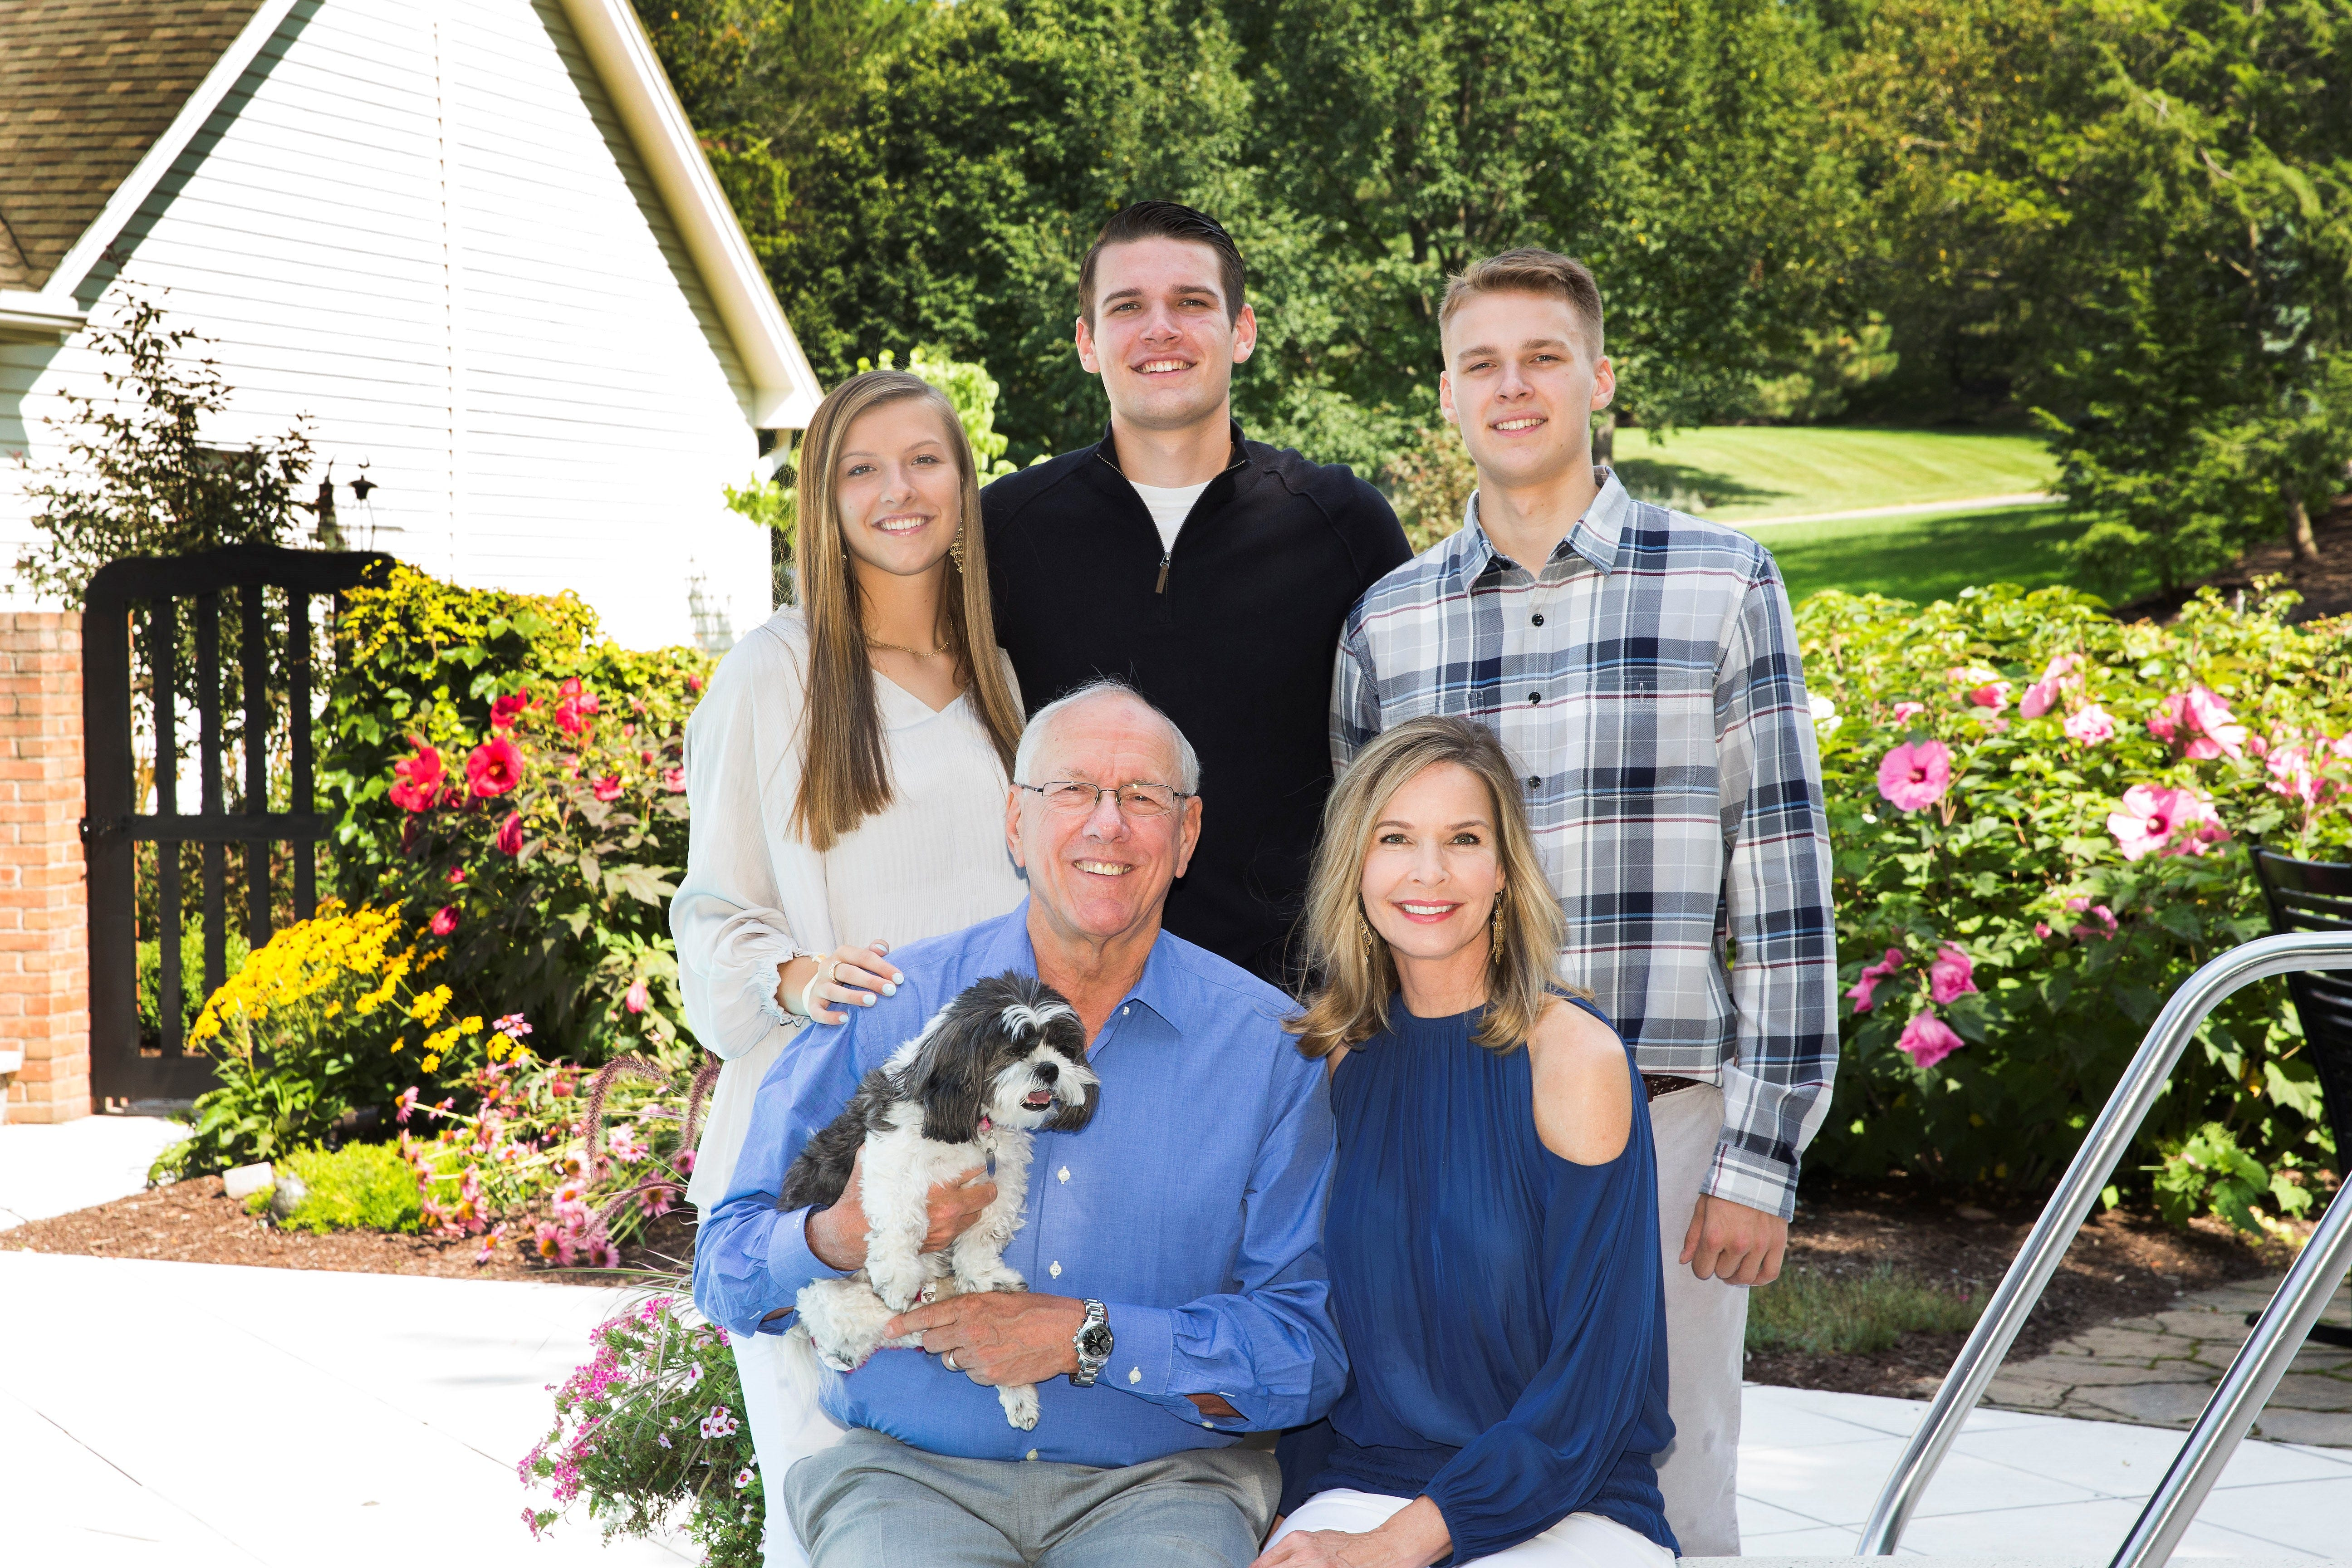 Hall of Fame dad: How Jim Boeheim's three kids grew up to play college basketball